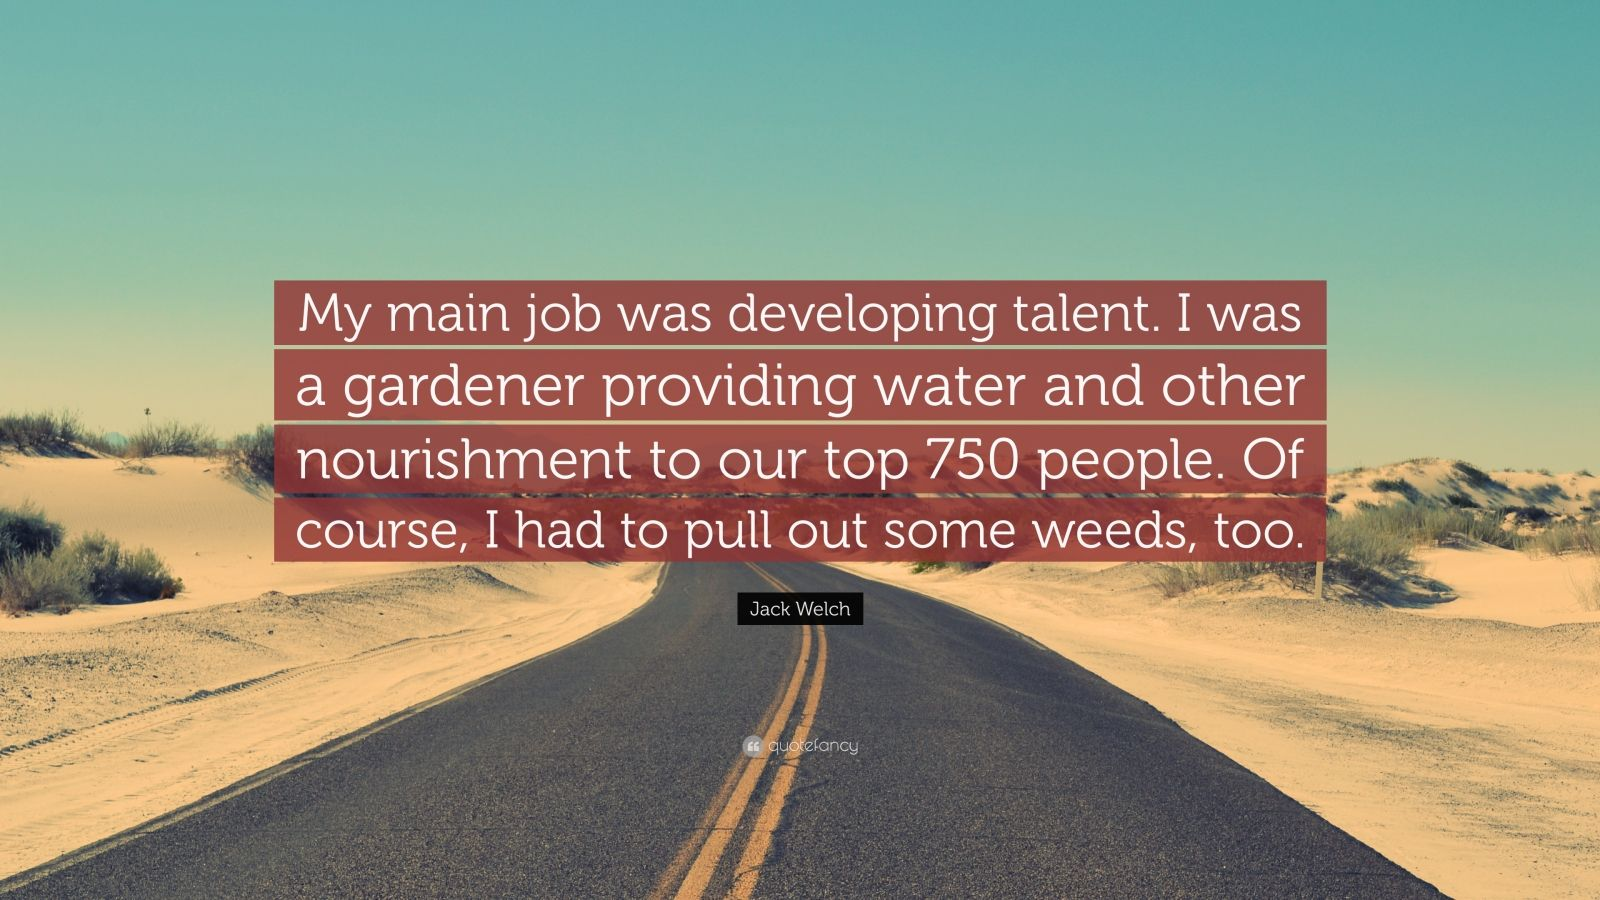 """Jack Welch Quote: """"My main job was developing talent. I was a gardener providing water and other nourishment to our top 750 people. Of course, I had to pull out some weeds, too."""""""